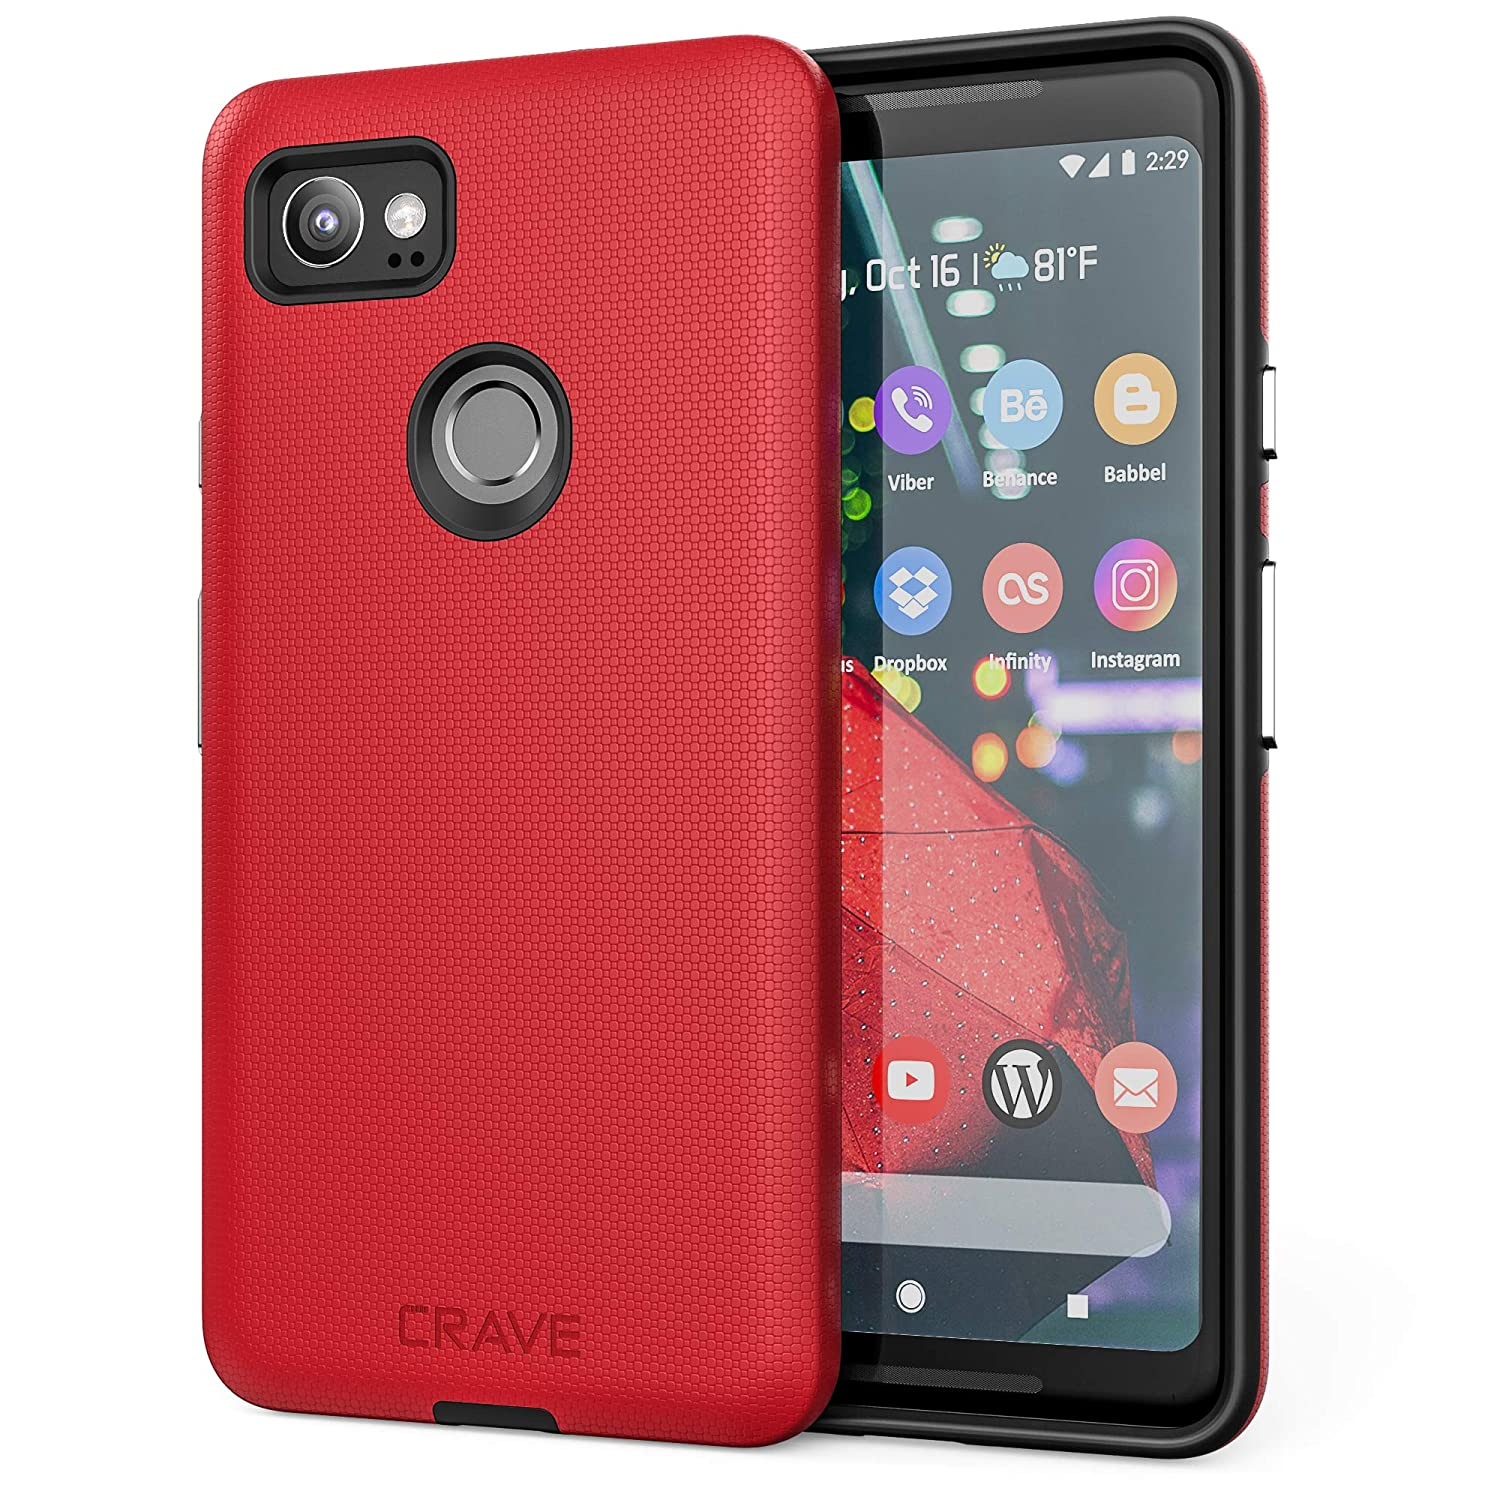 official photos 670a7 071f8 Google Pixel 2 XL Case, Crave Dual Guard Protection Series Case for Google  Pixel 2 XL - Red